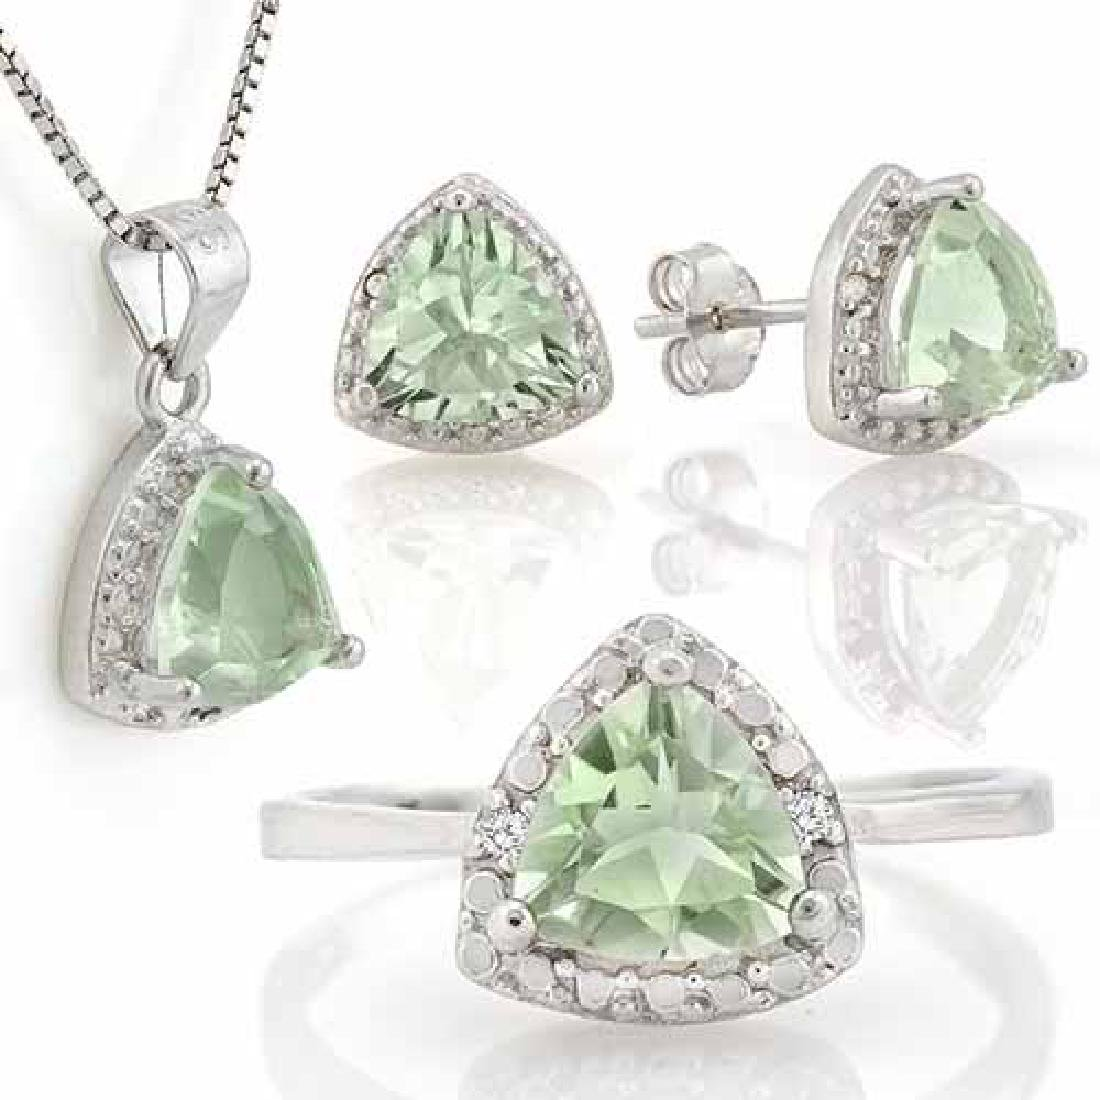 4 1/5 CARAT GREEN AMETHYST & DIAMOND 925 STERLING SILVE